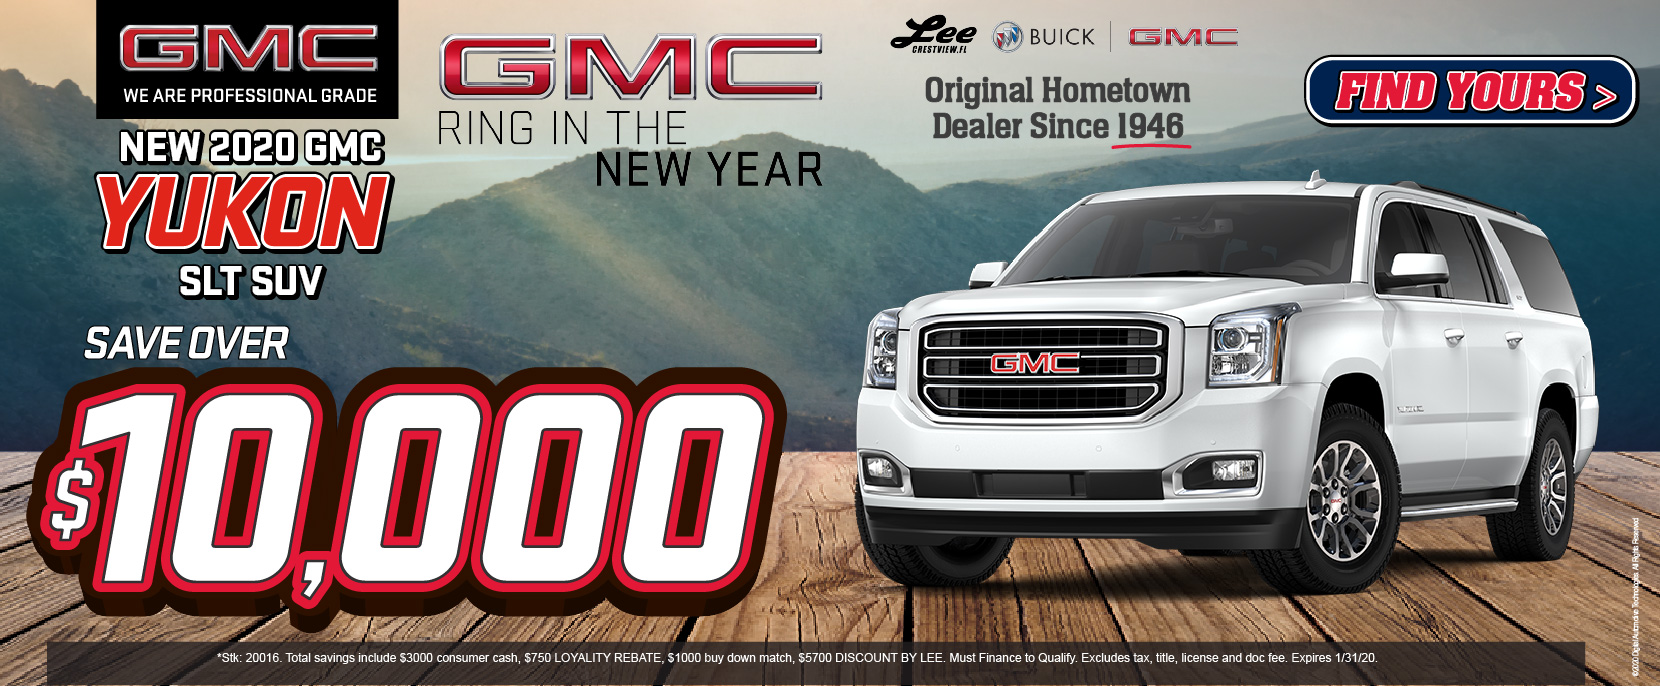 Gmc Dealer Near Me >> Buick And Gmc Dealer In Crestview Fl Serving Fort Walton